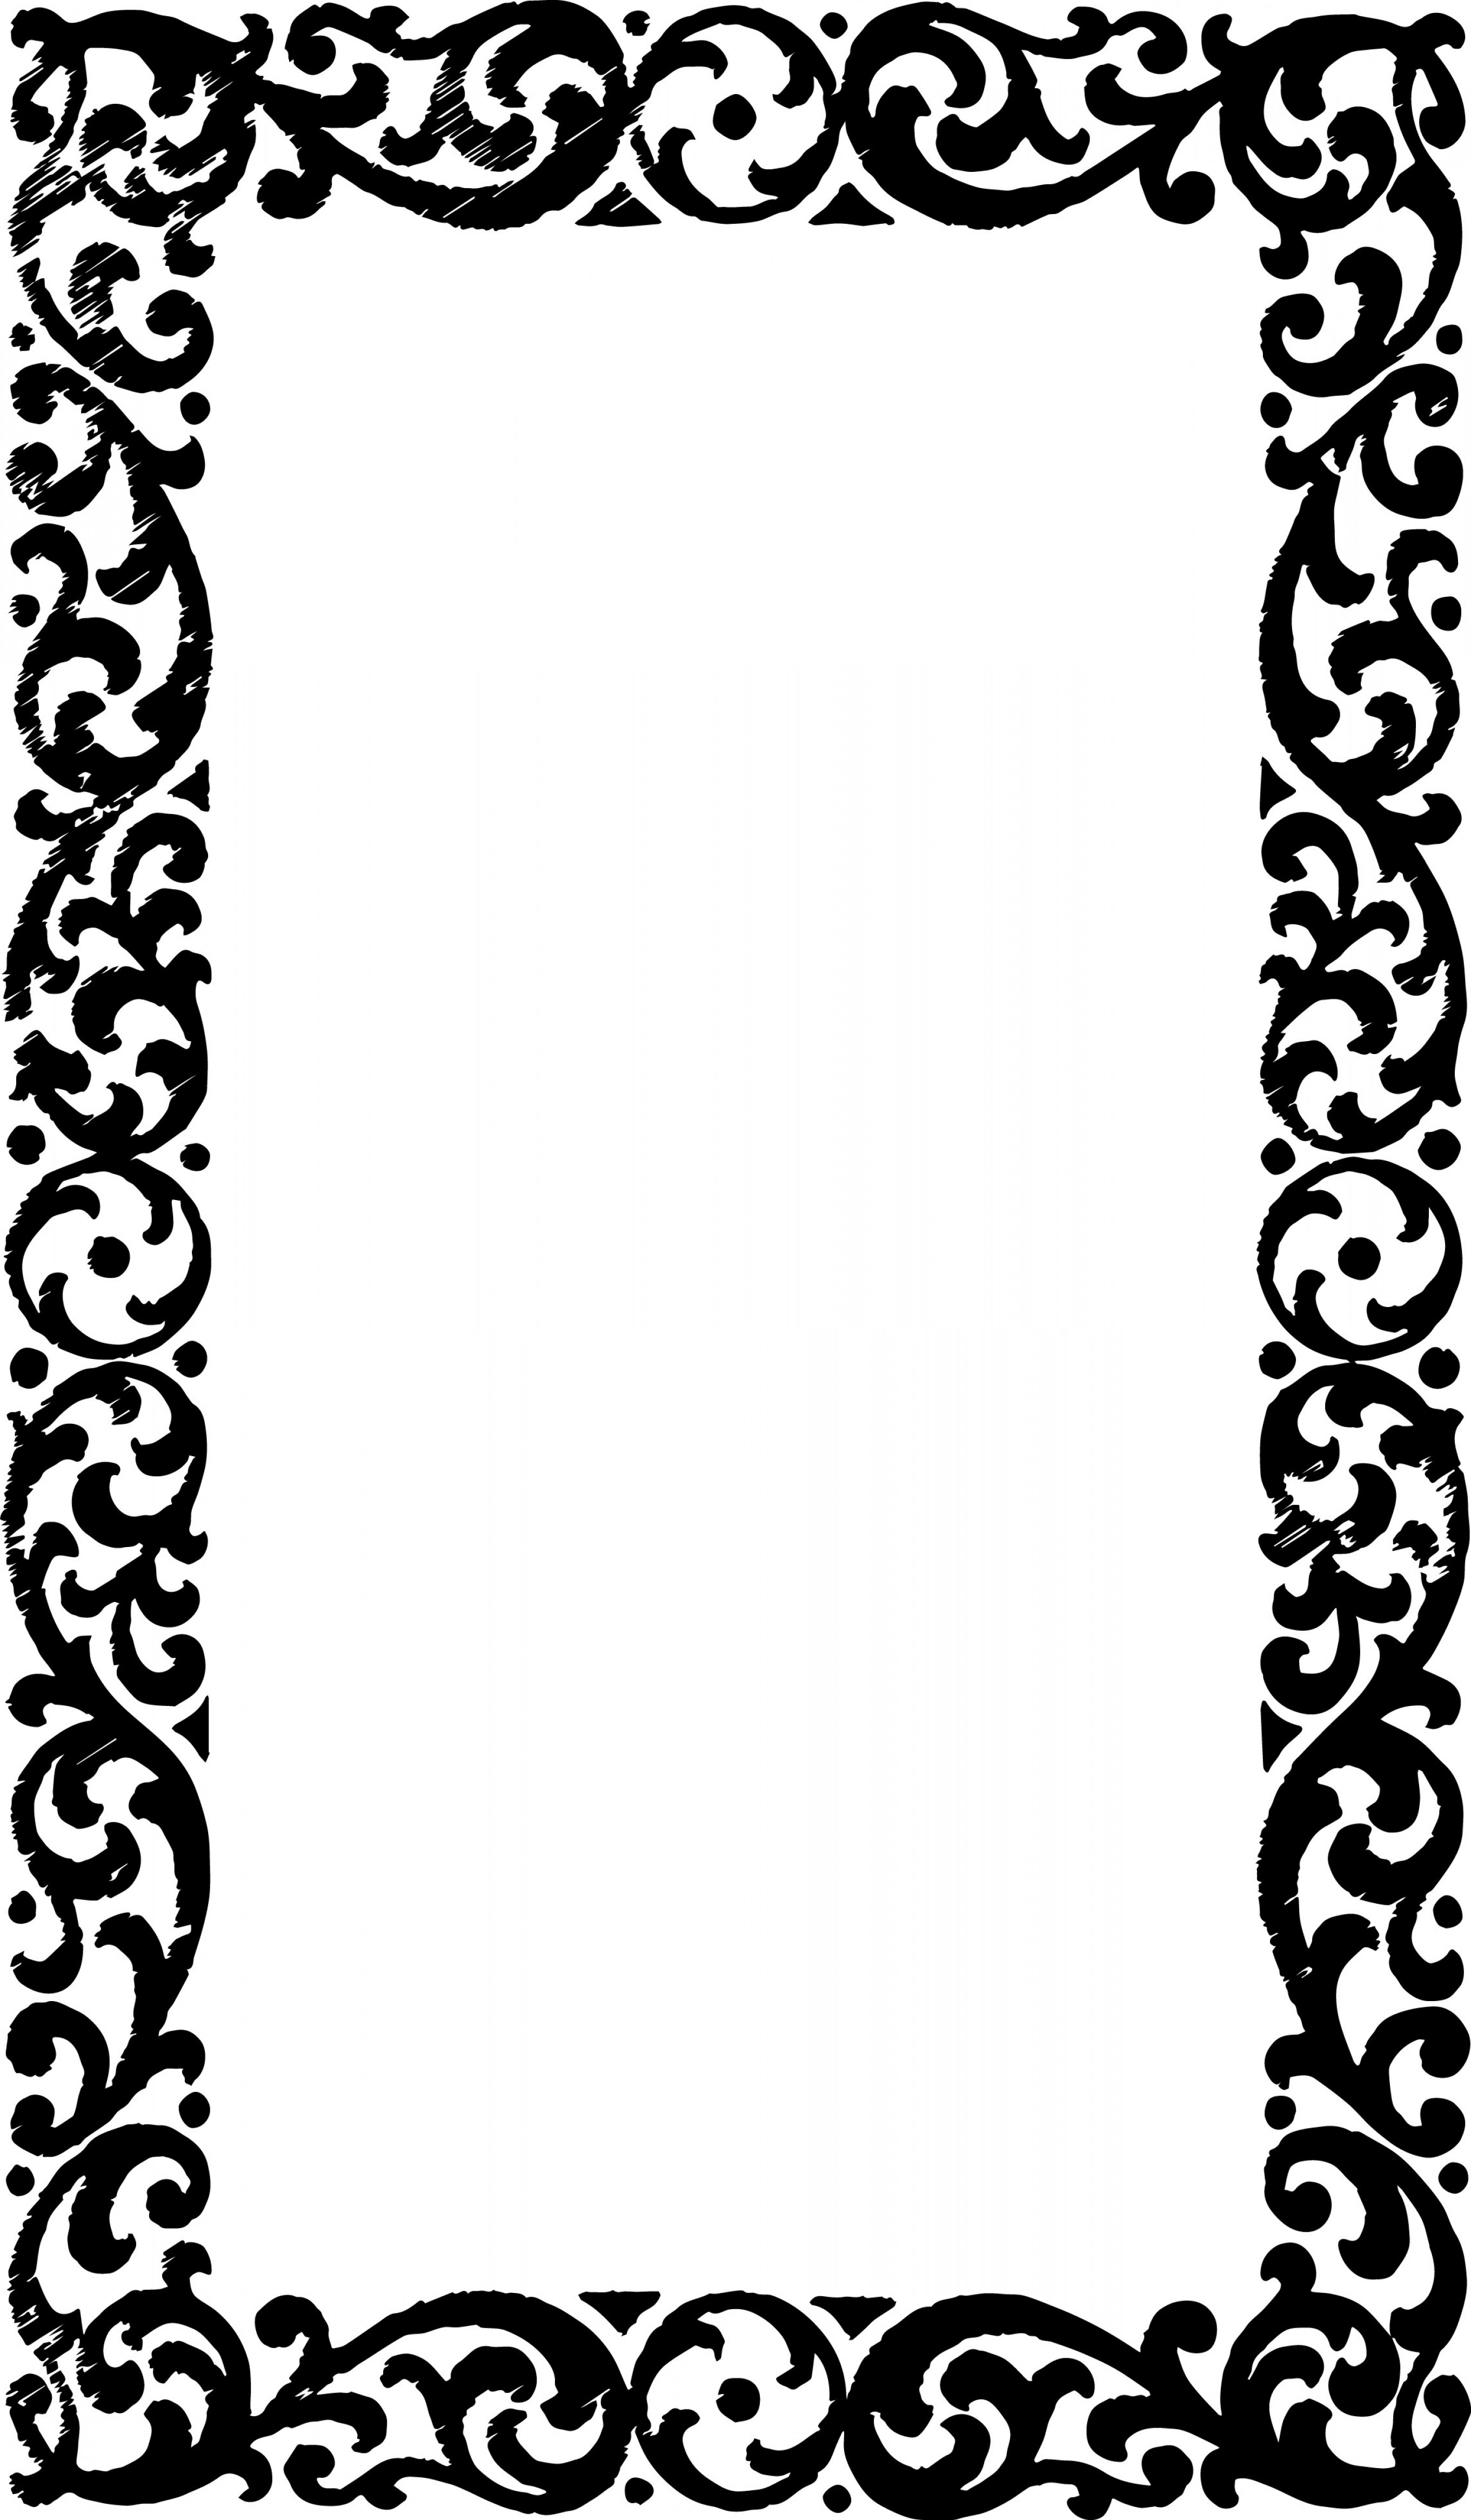 Photo frame border design clipart graphic black and white library Free Vector Art Clipart Vintage Frame Border | SOIDERGI graphic black and white library